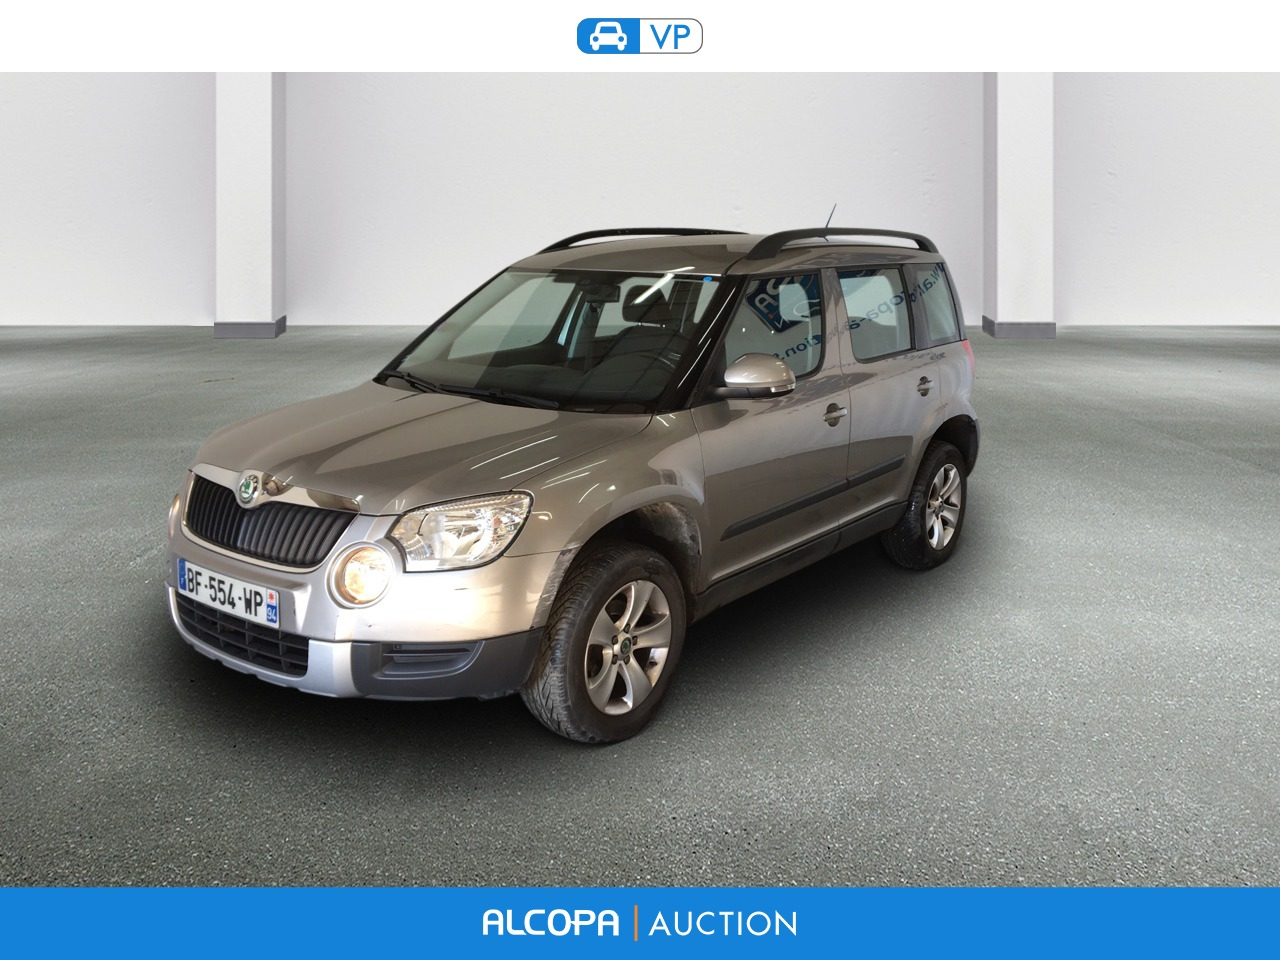 skoda yeti 06 2009 10 2013 yeti 1 2 tsi 105 ambition dsg alcopa auction. Black Bedroom Furniture Sets. Home Design Ideas